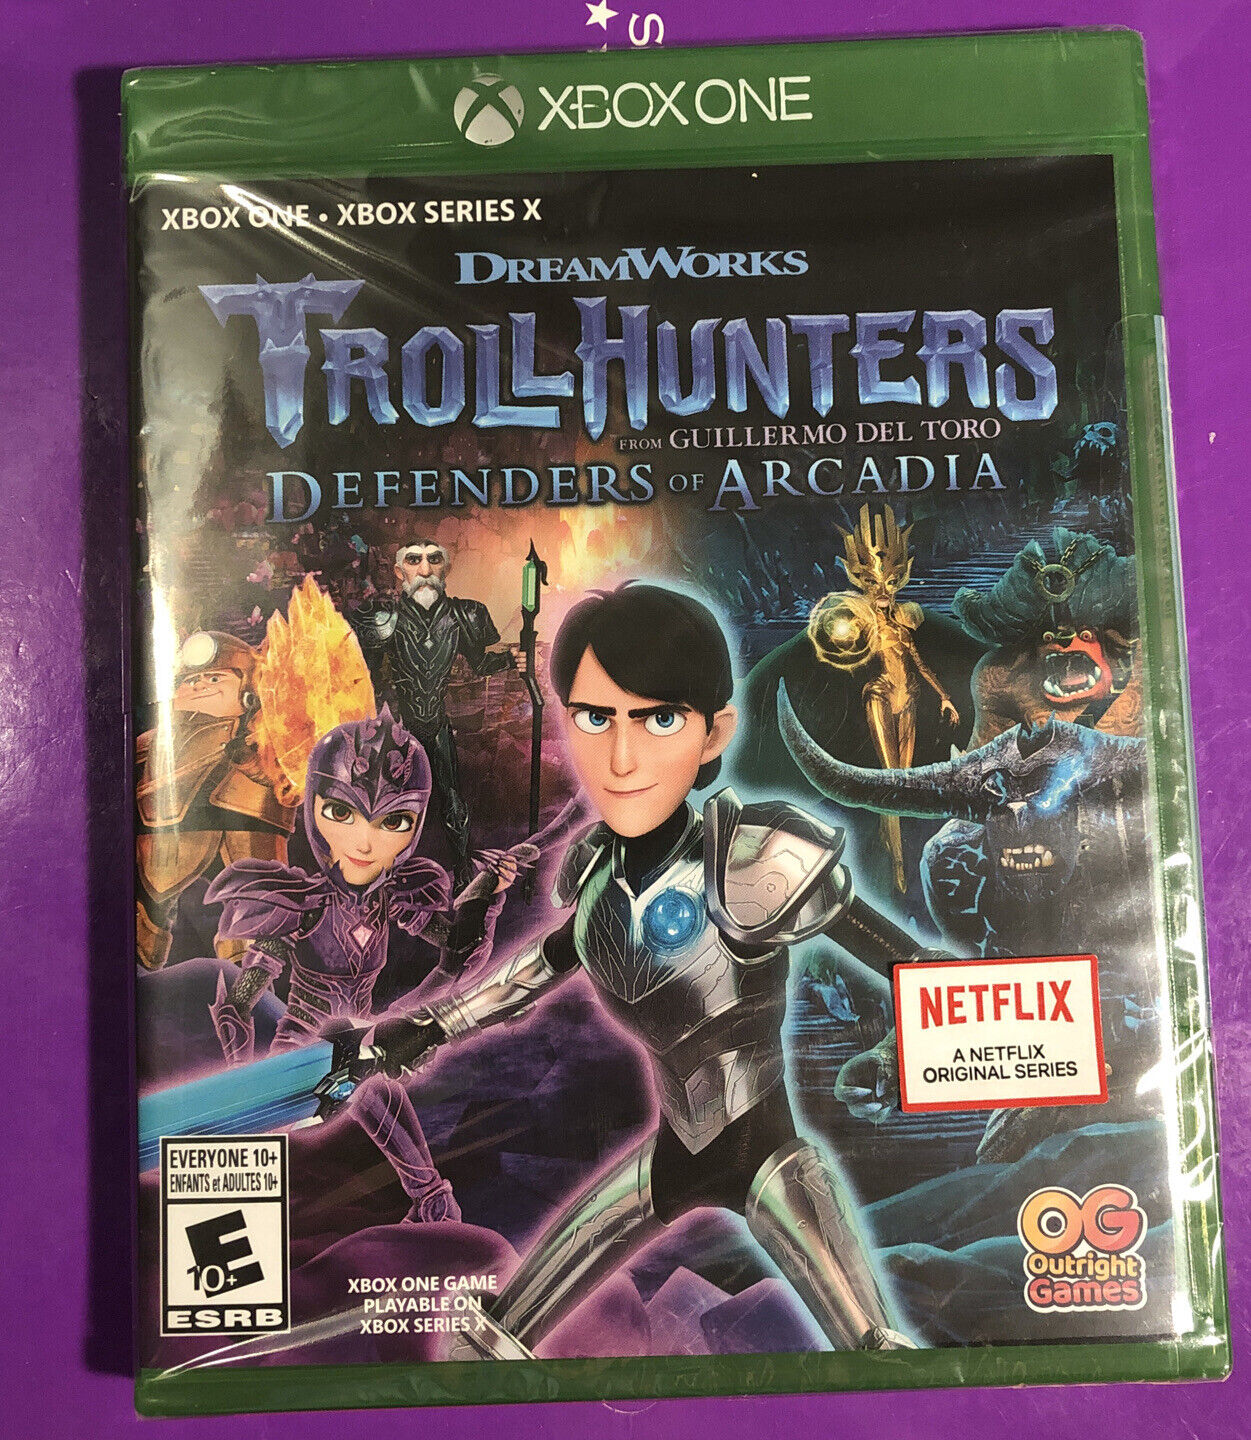 XBOX ONE TrollHunters Defenders of Arcadia Game Brand New Factory Sealed in Case